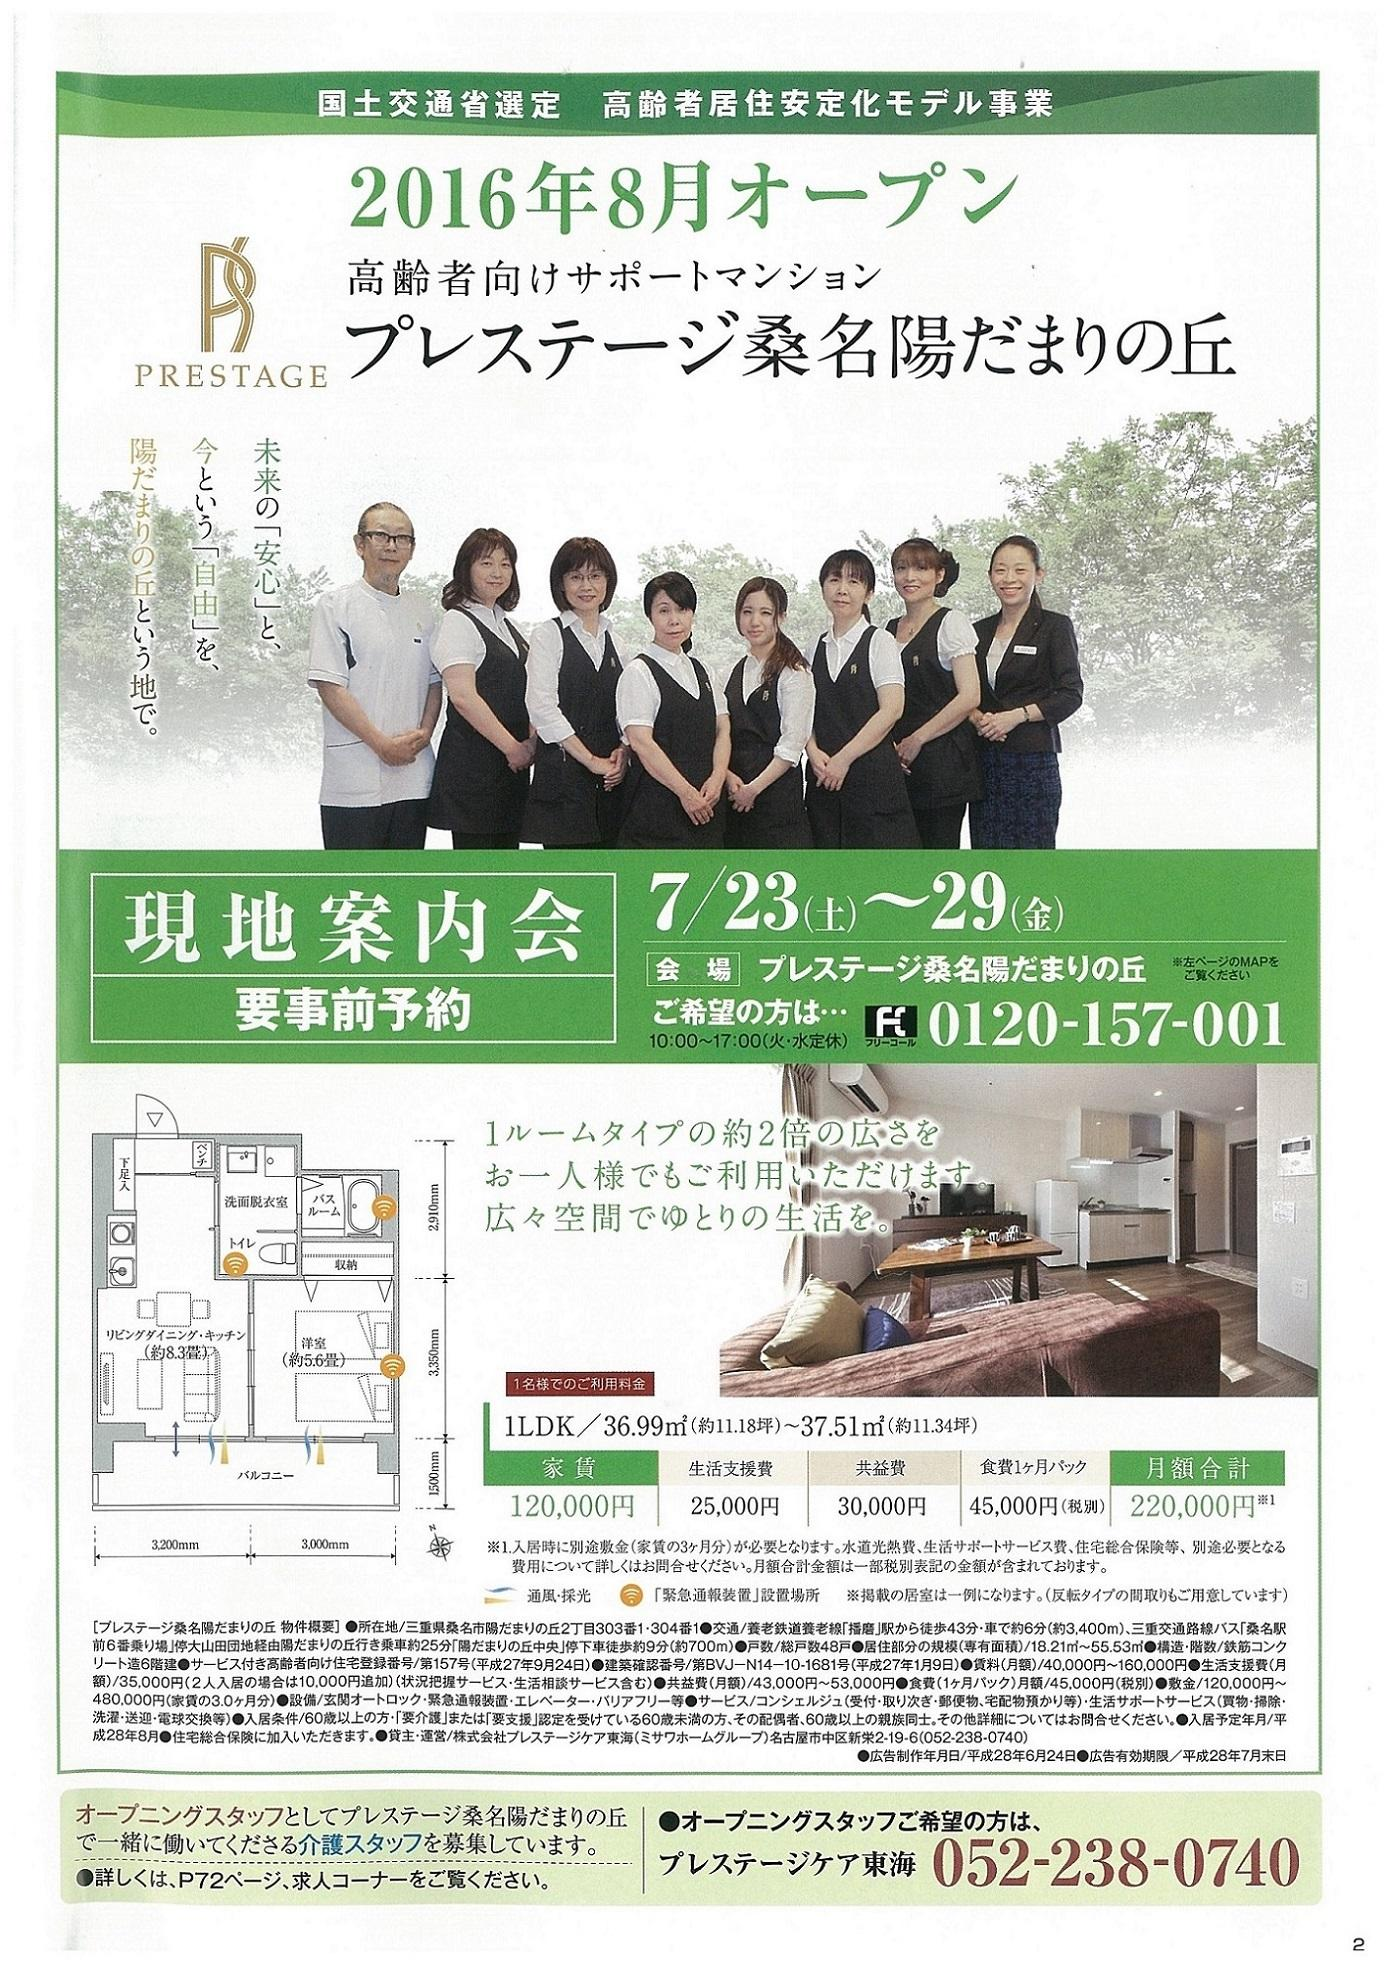 http://www.prestige-care-tokai.co.jp/information/images/tl7mcTUsn2.jpg